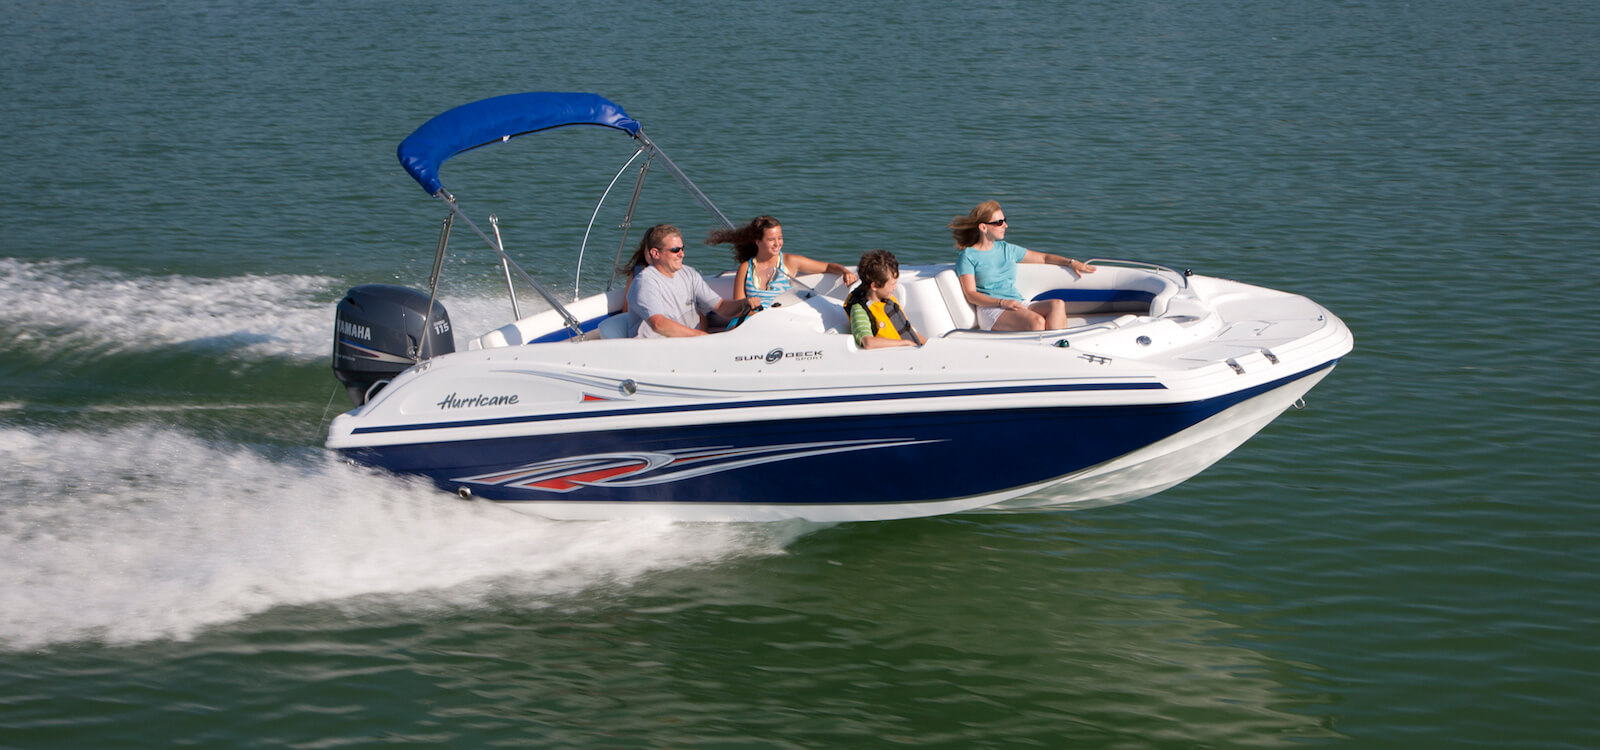 fort-myers-florida-activities-boat-rentals